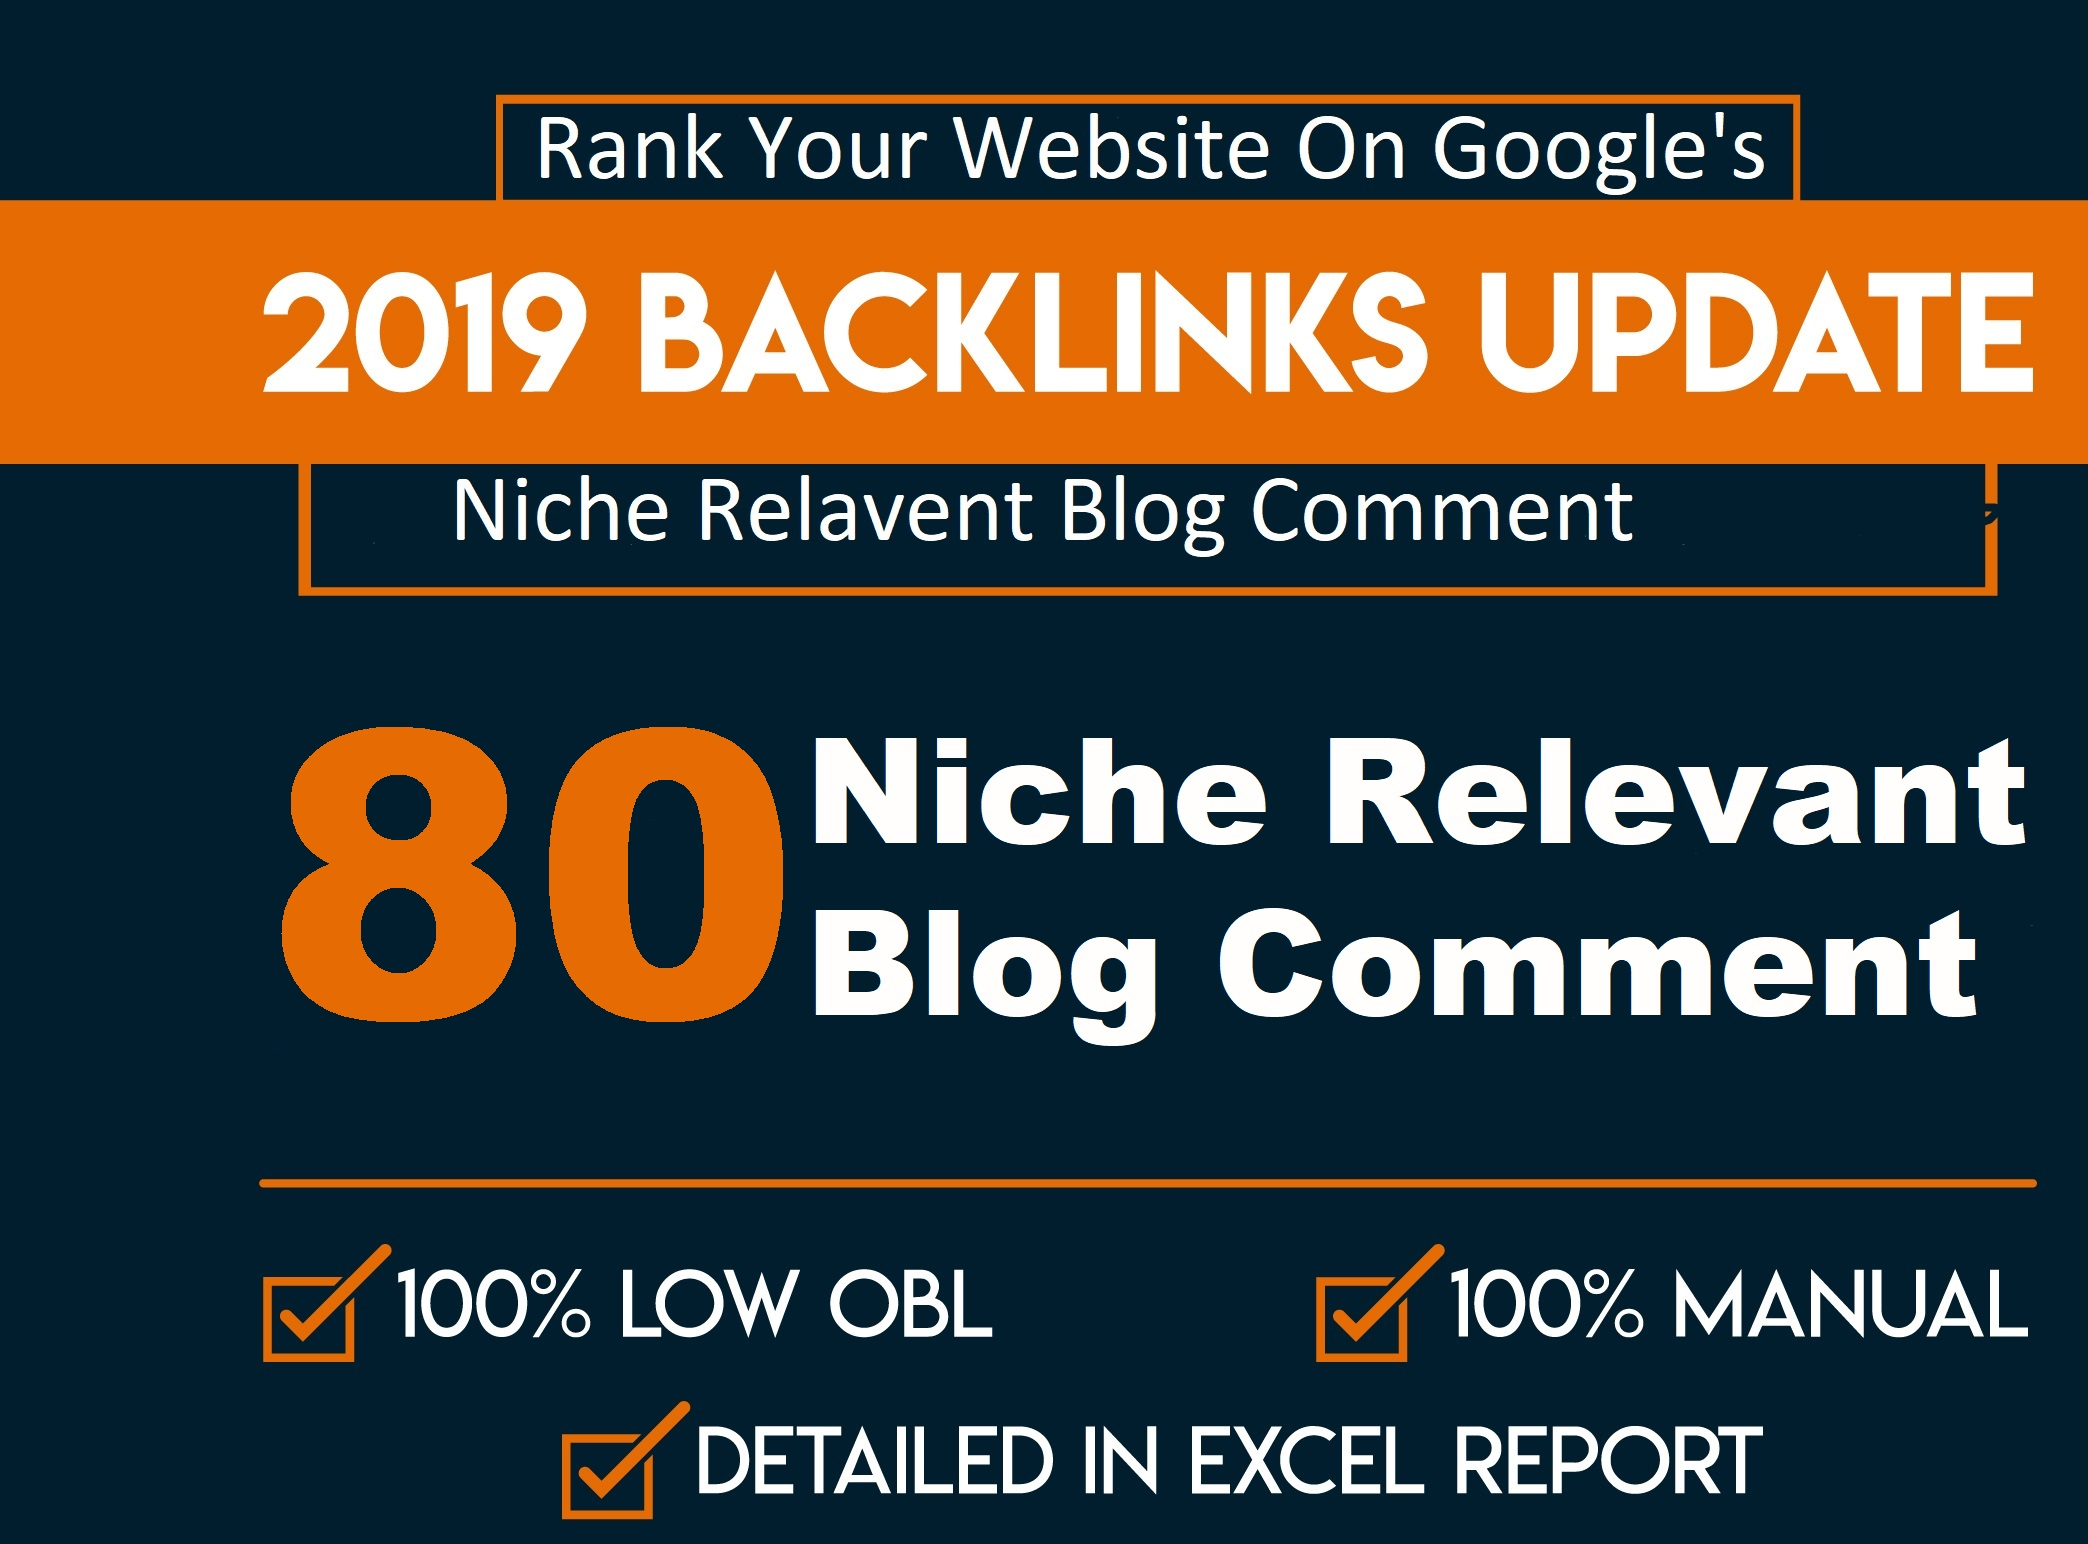 100 Percent Manual Backlinks Niche Relevant Blog Comments with Low OBL